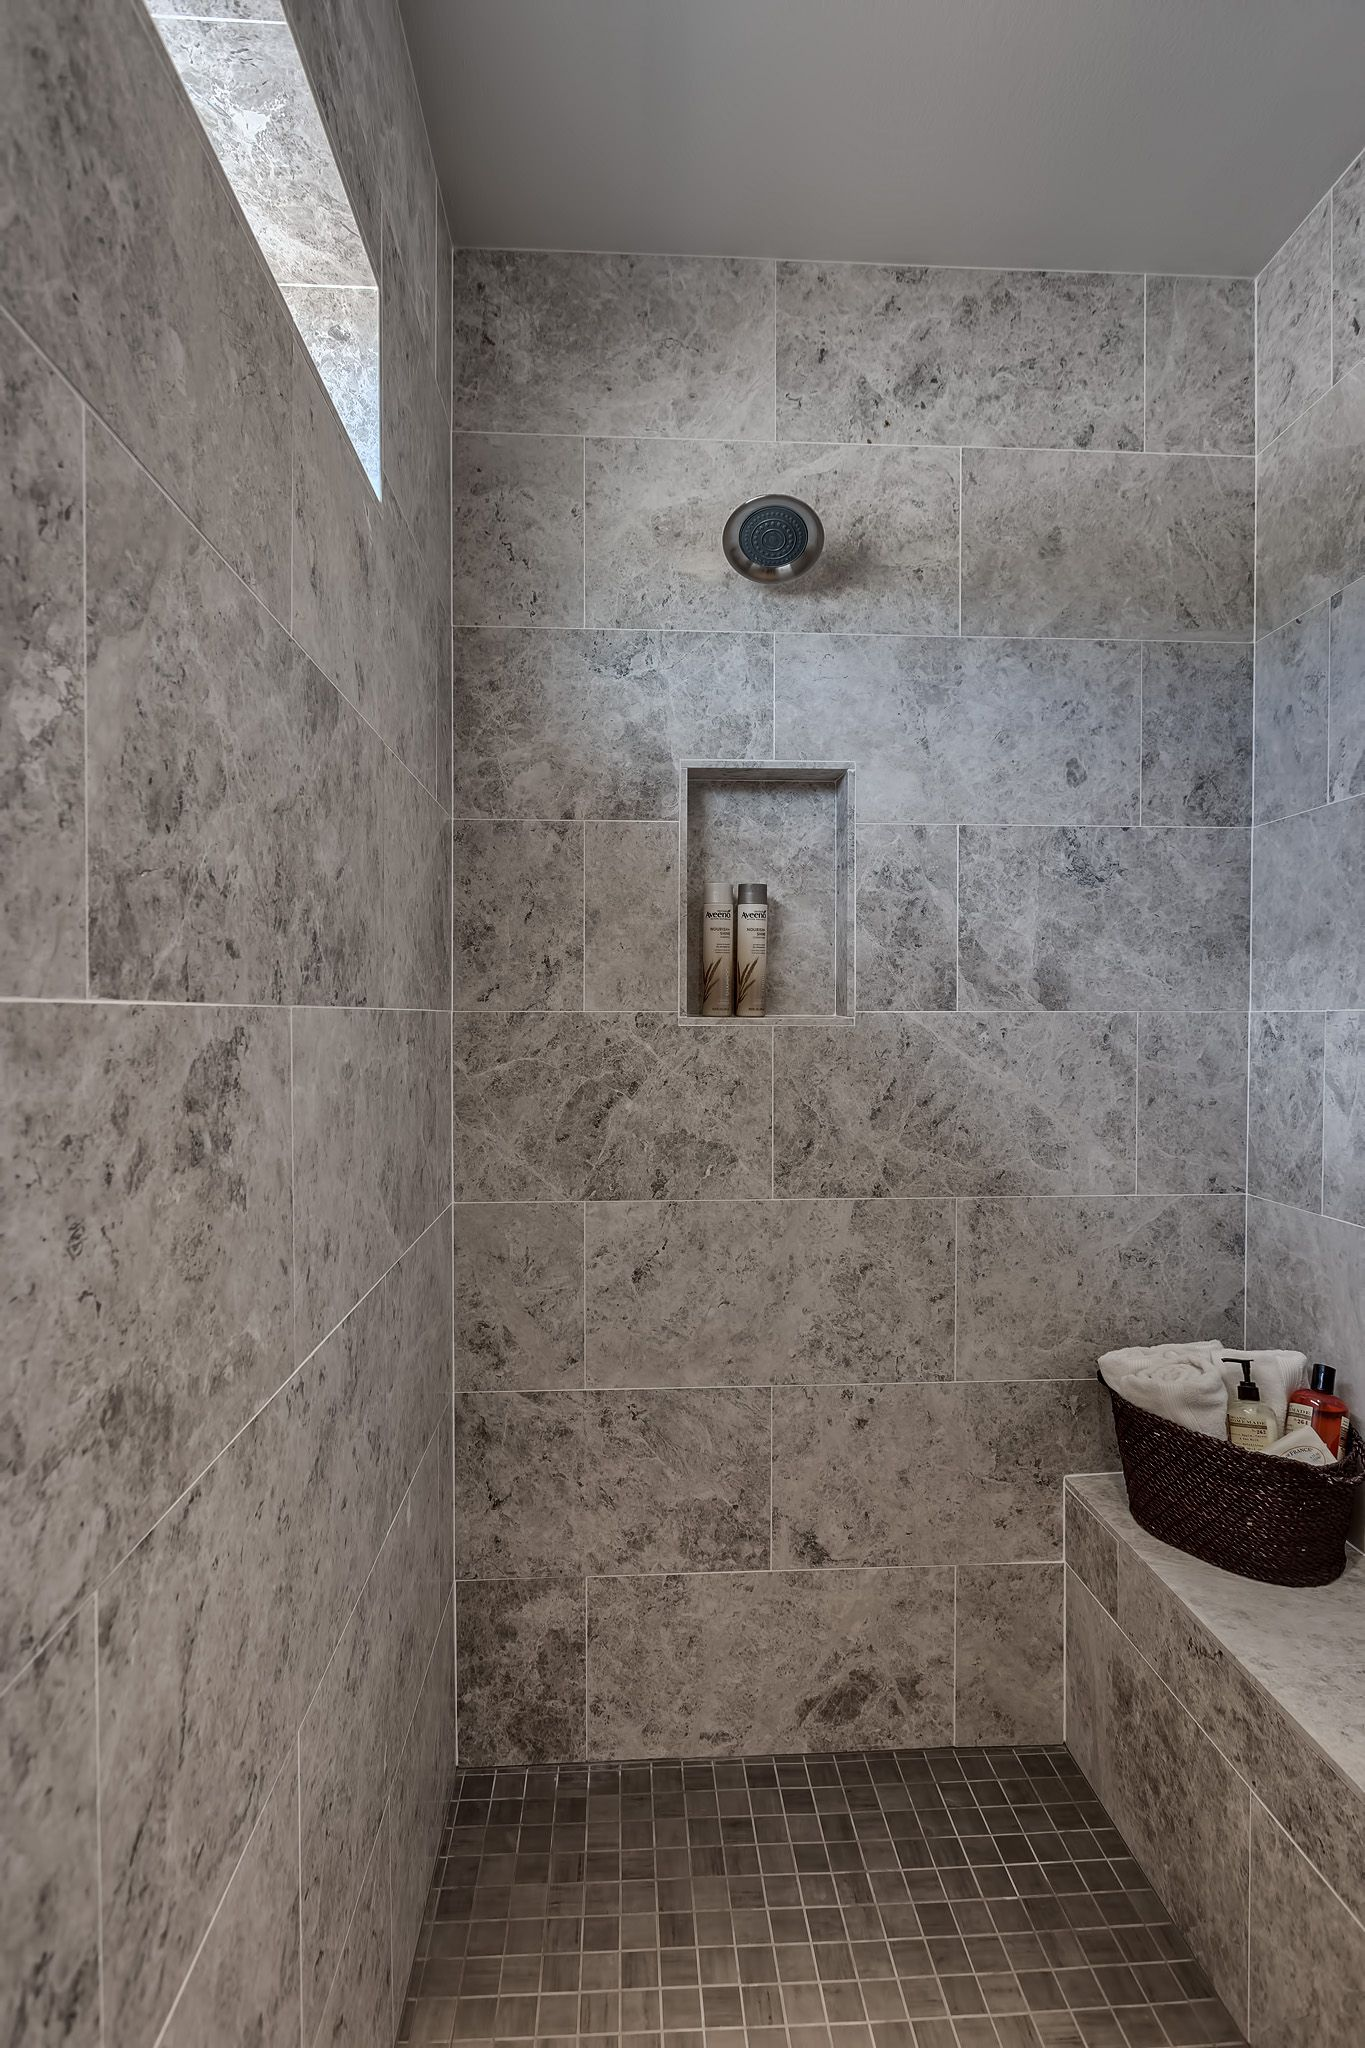 Zero Entry Walk The Master Shower Shave Ledge And Tile Floorpan Fresco